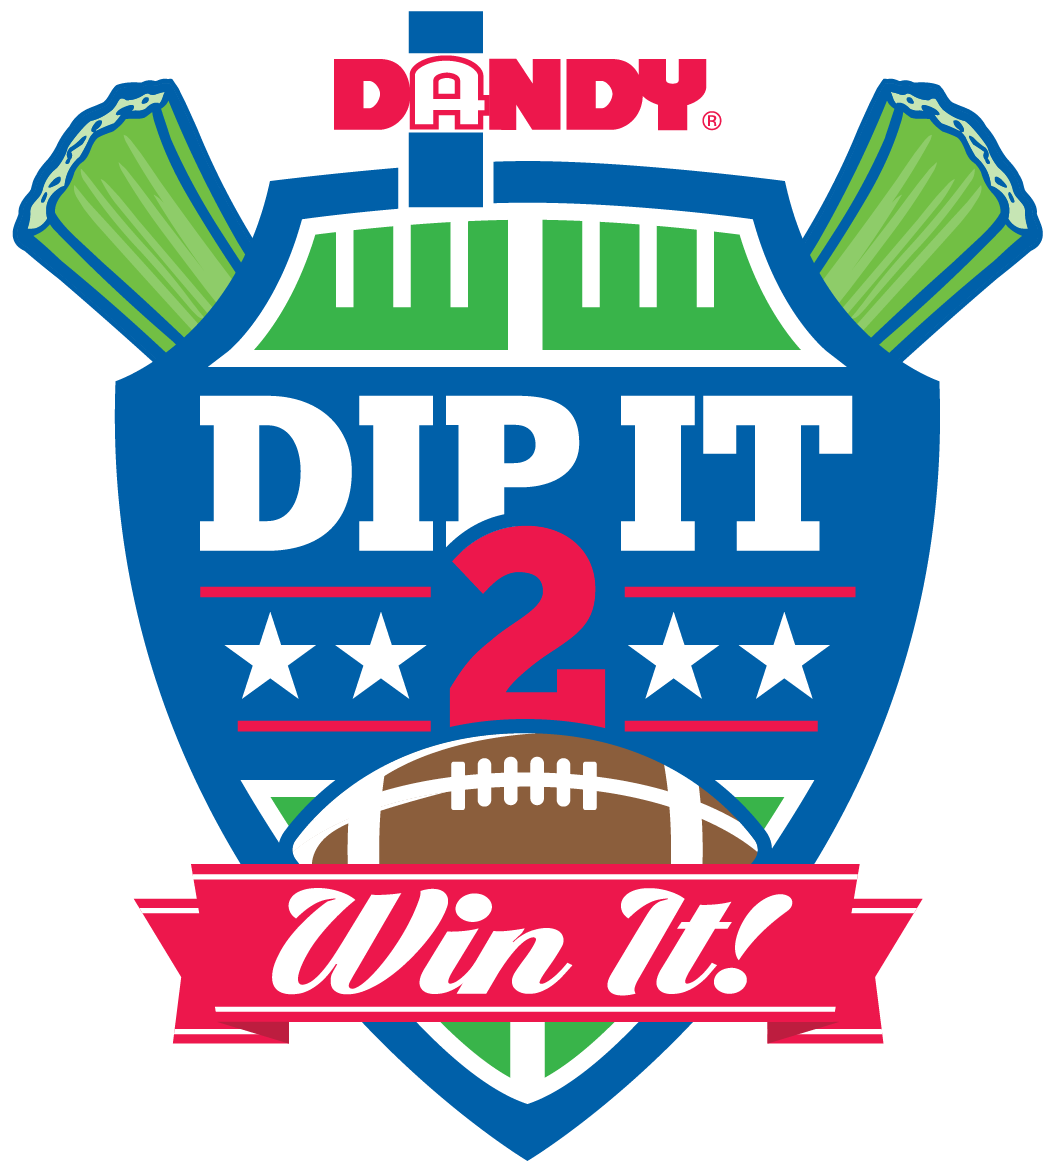 Dandy® Dip It 2 Win It!